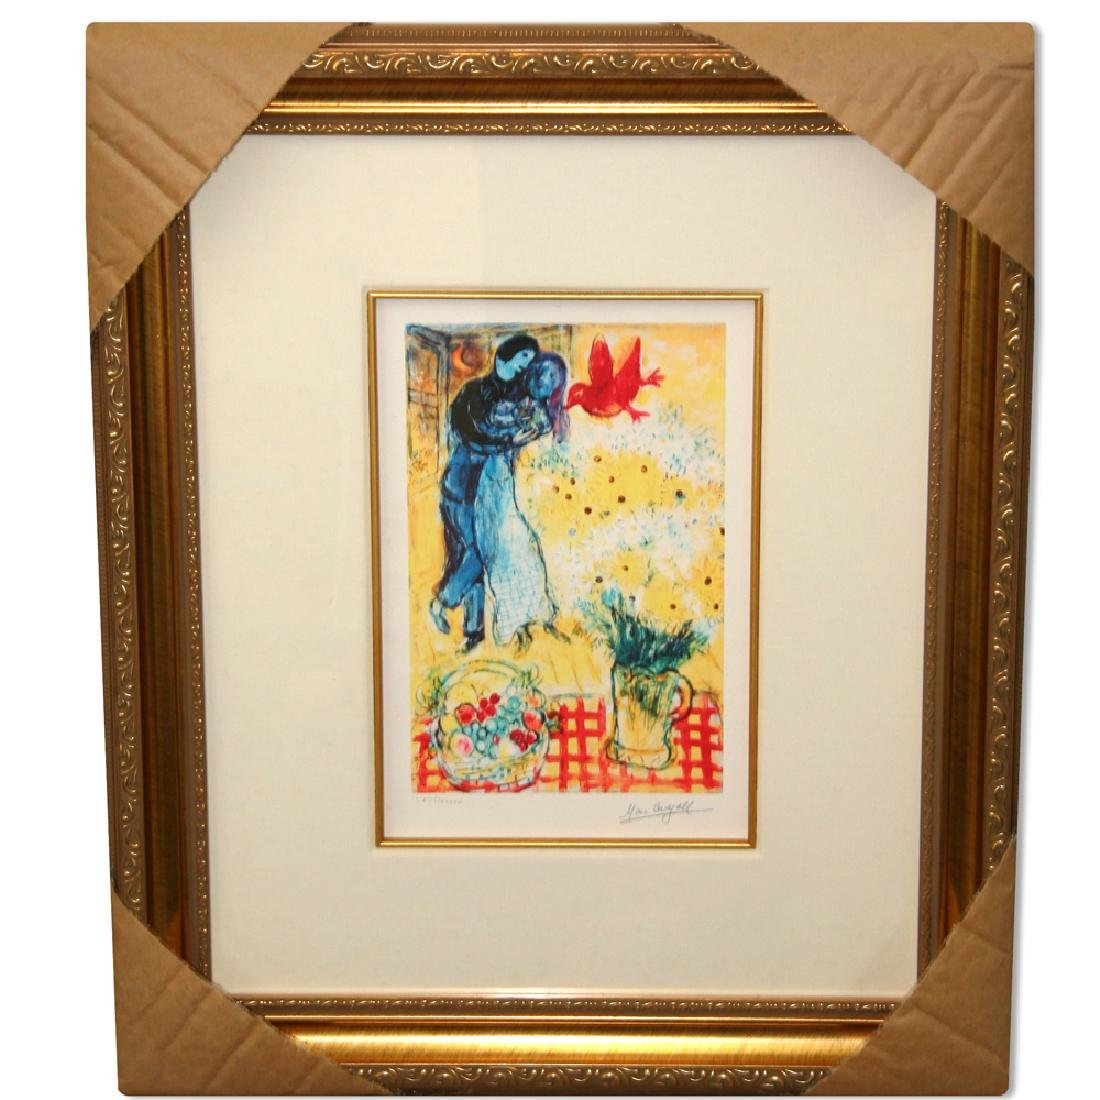 Chagall (After) 'Lovers & Daisies' Museum Framed